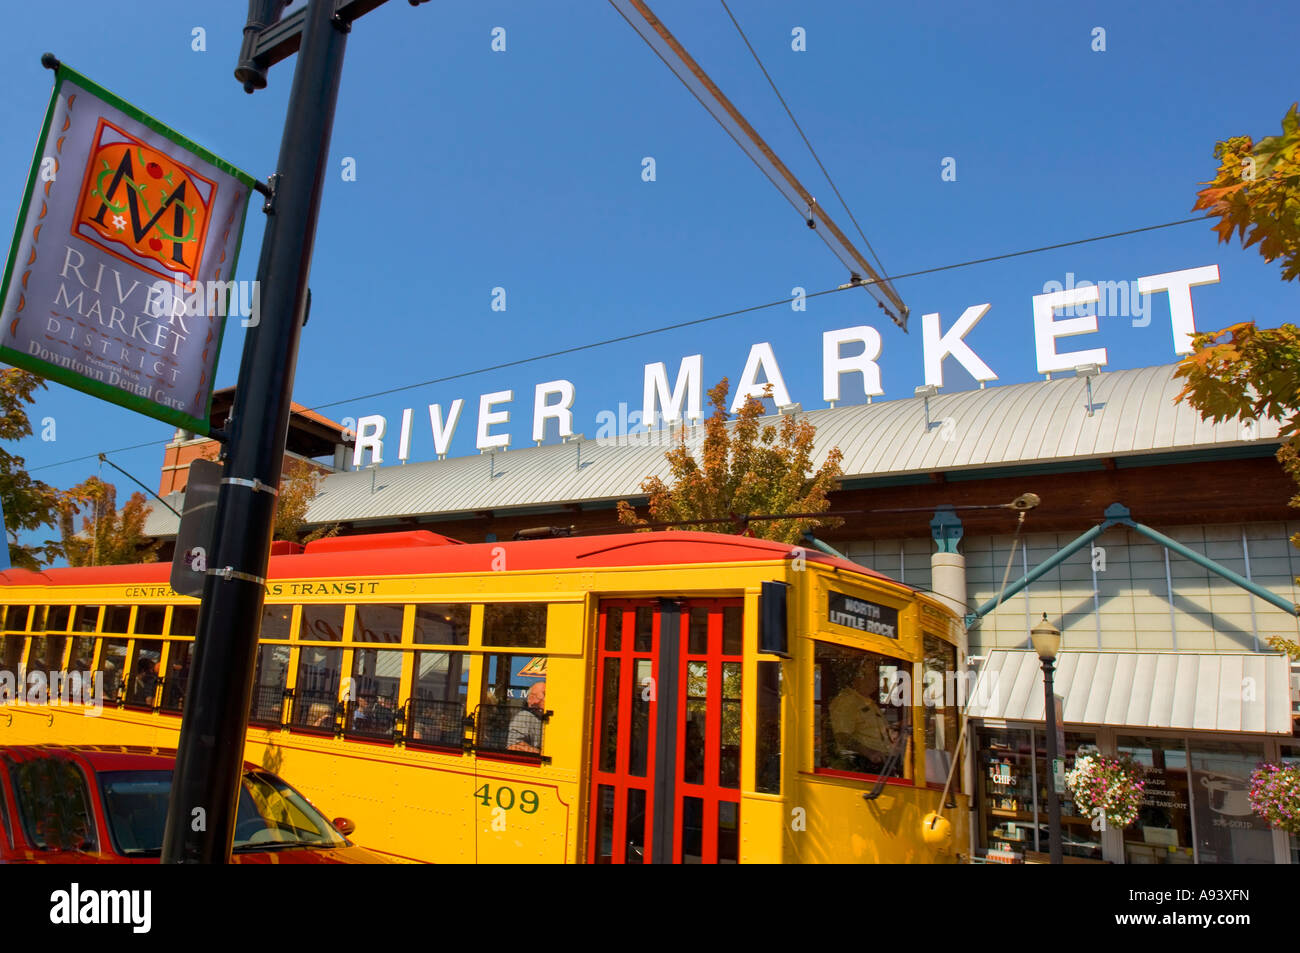 Trolley in River Market District popular tourist area in Little Rock Arkansas - Stock Image